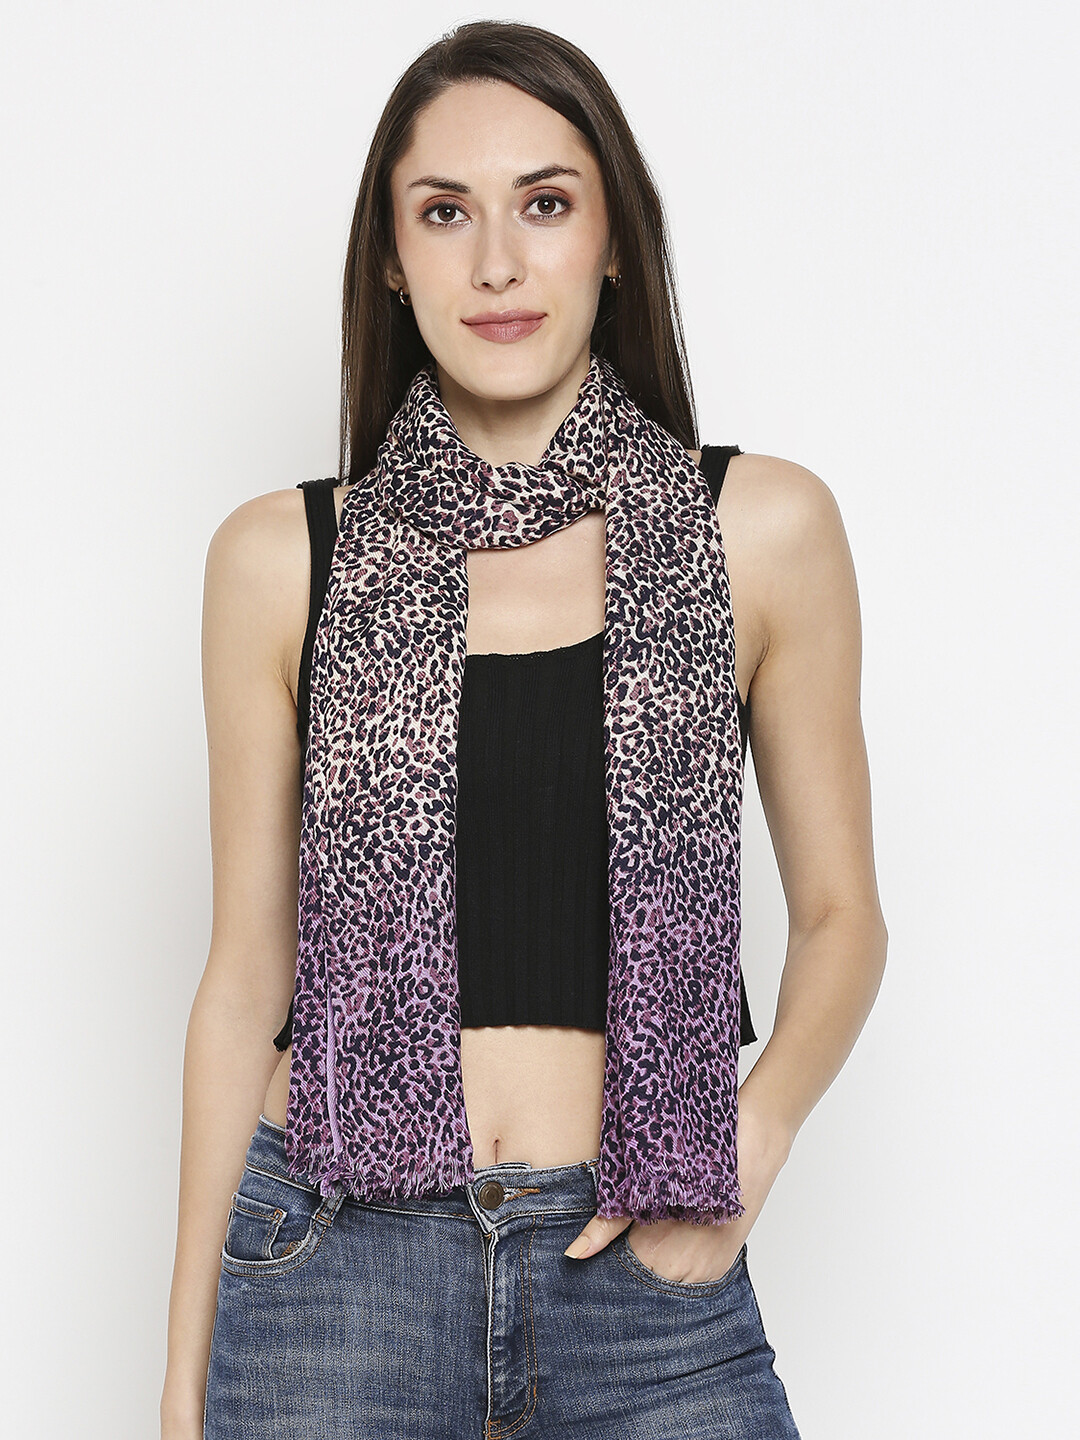 Animal Printed and Shaded Scarves with Raw Fringes